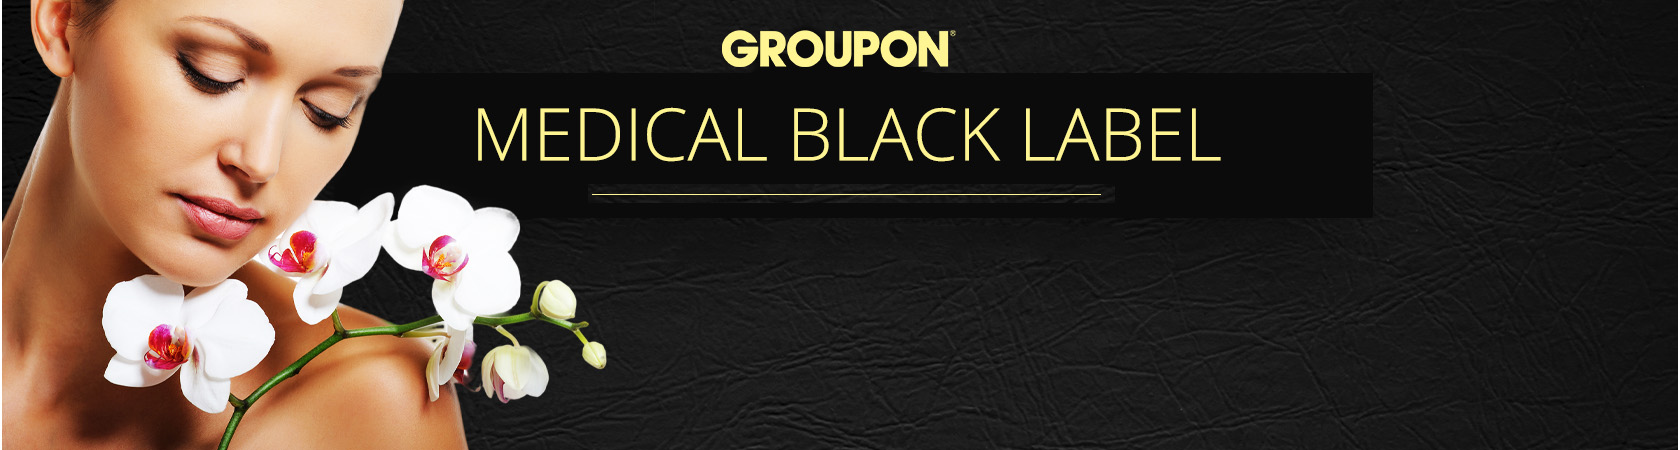 Medical Black Label